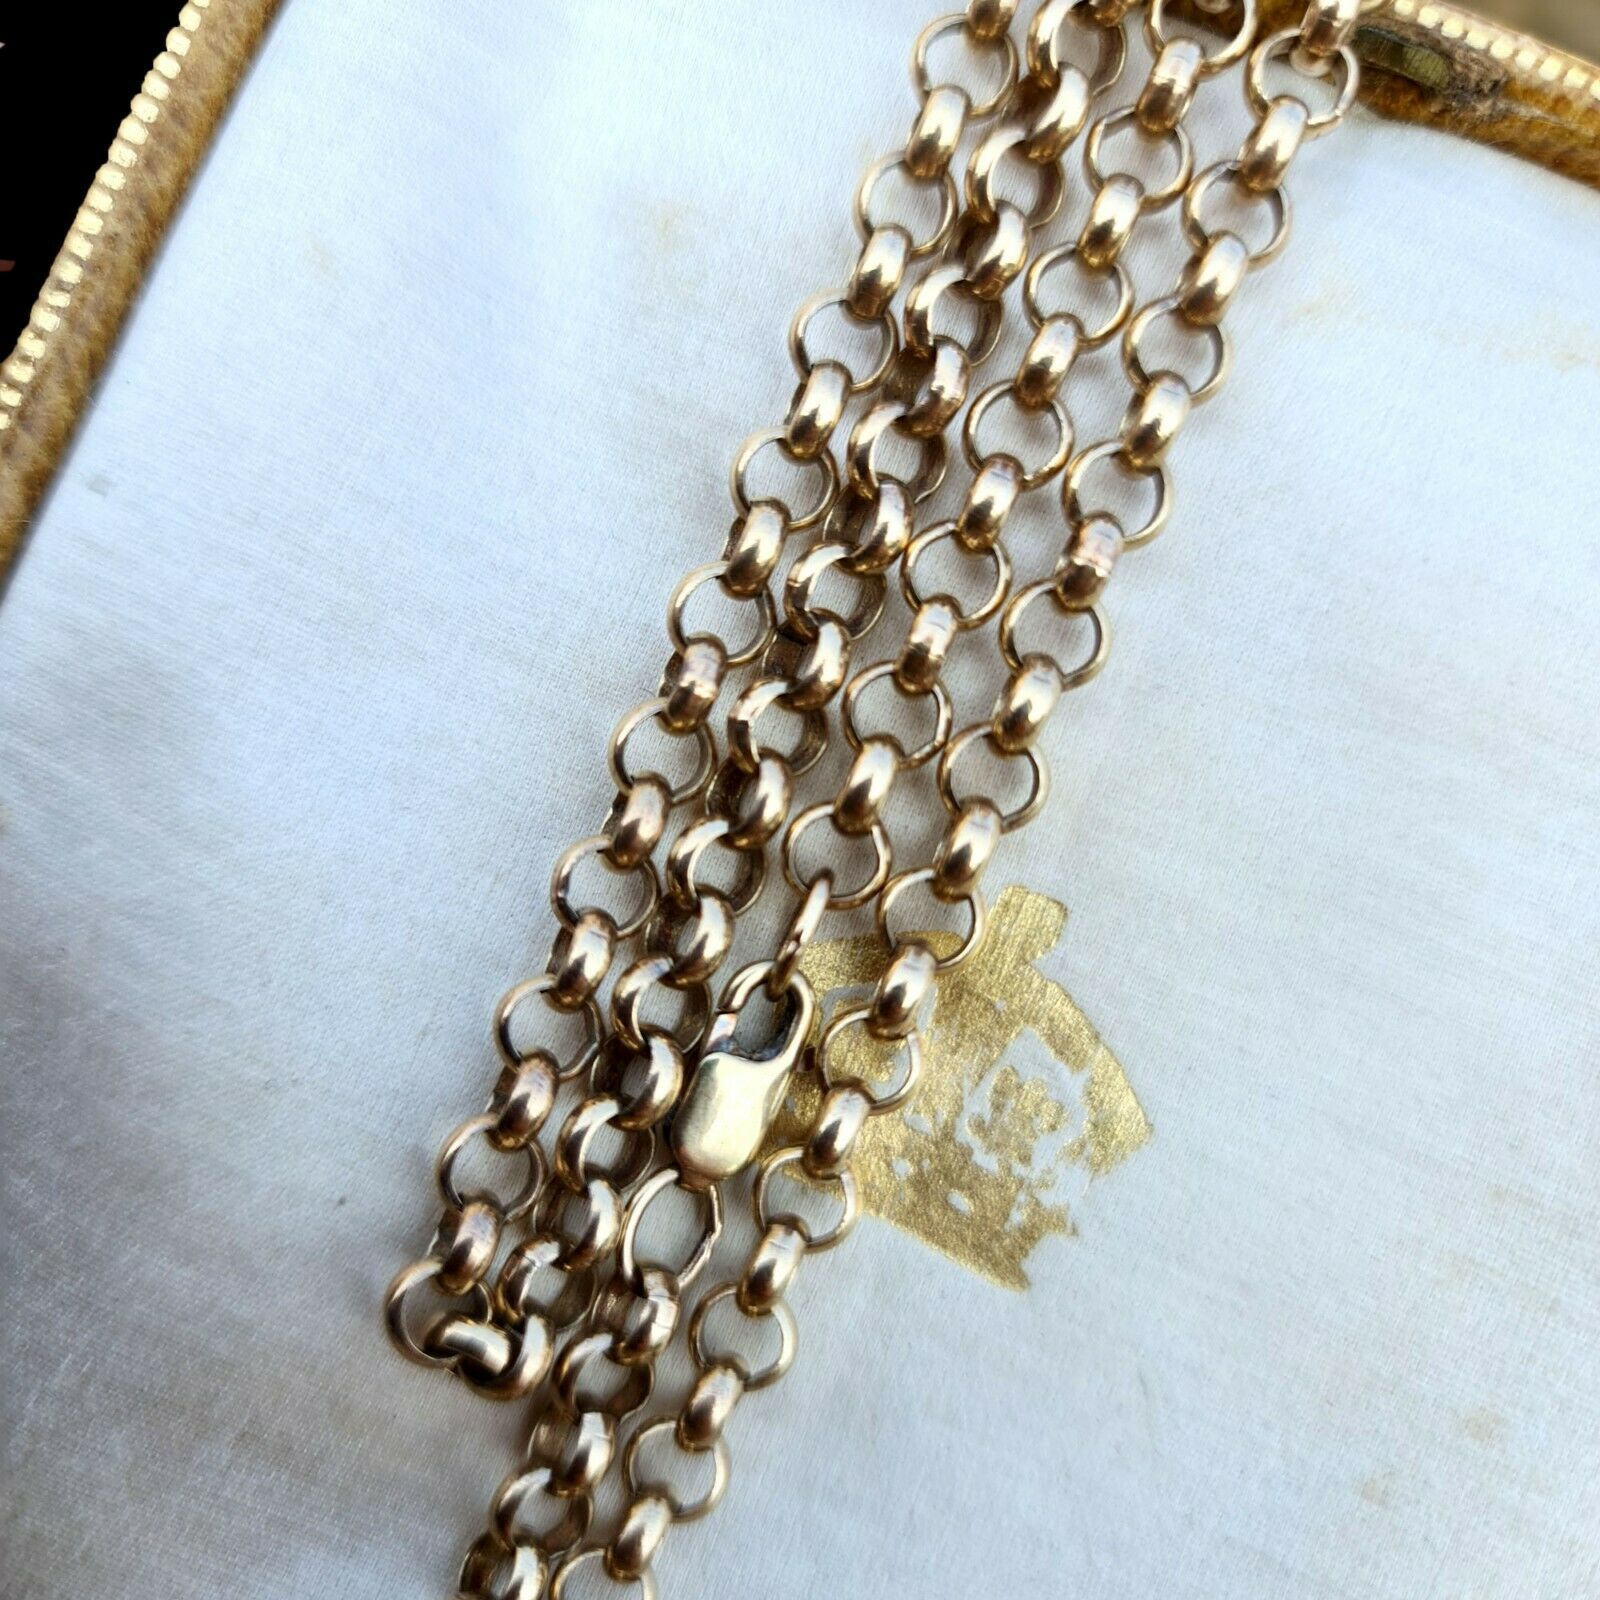 """Solid 9ct, 9k, 375 yellow Gold belcher link chain, necklace. Length 22.5"""", 57cm"""